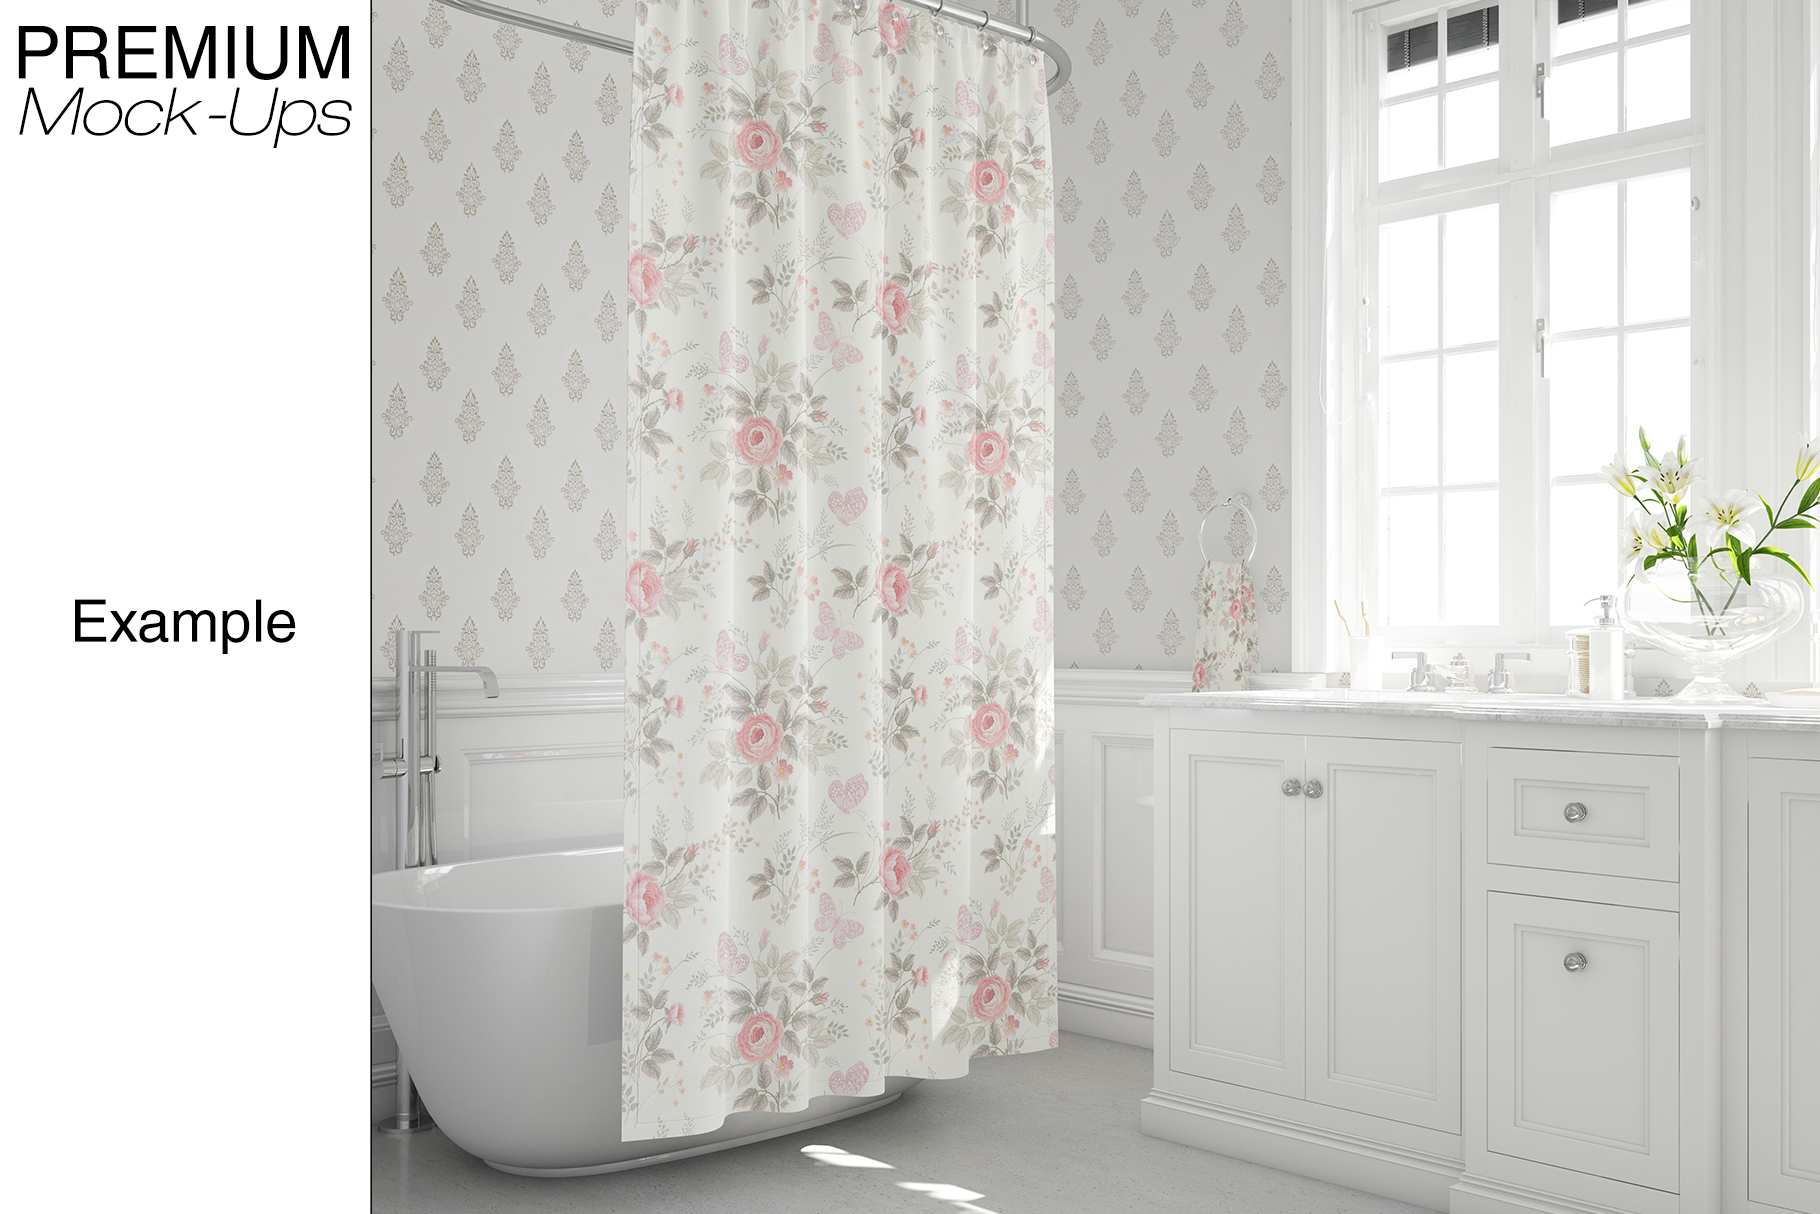 Bath Curtain Mockup Pack example image 7